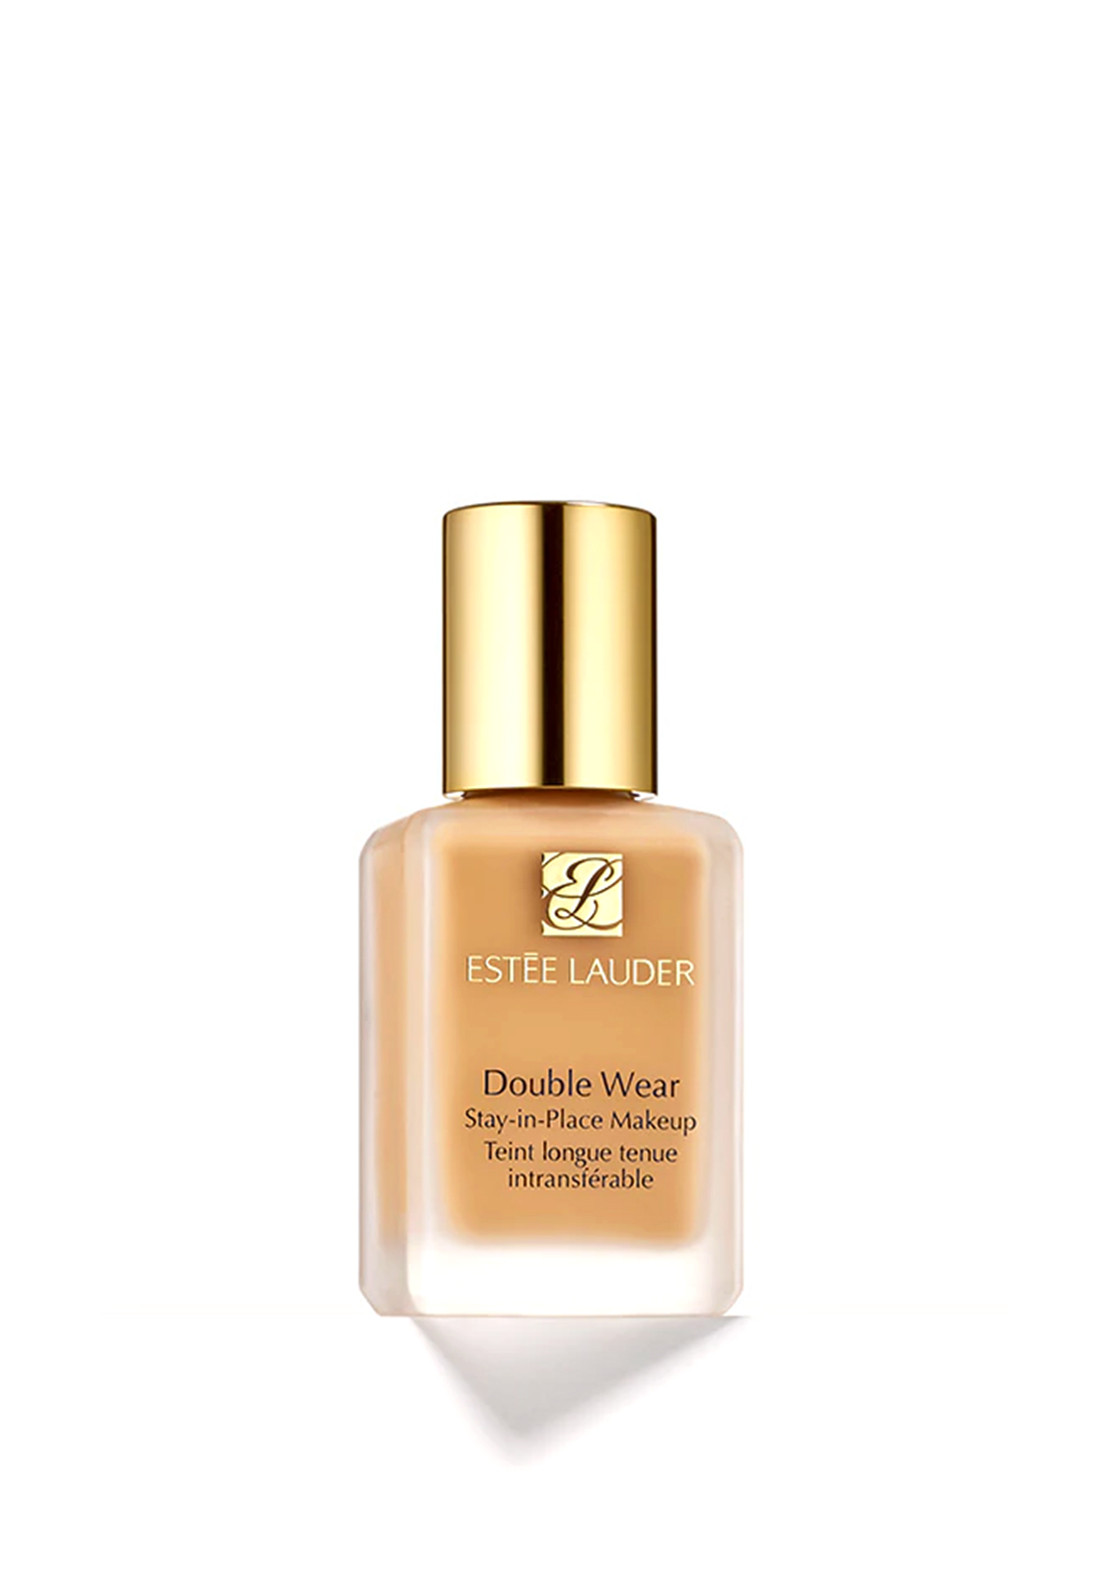 Estee Lauder Double Wear Foundation, Pure Beige